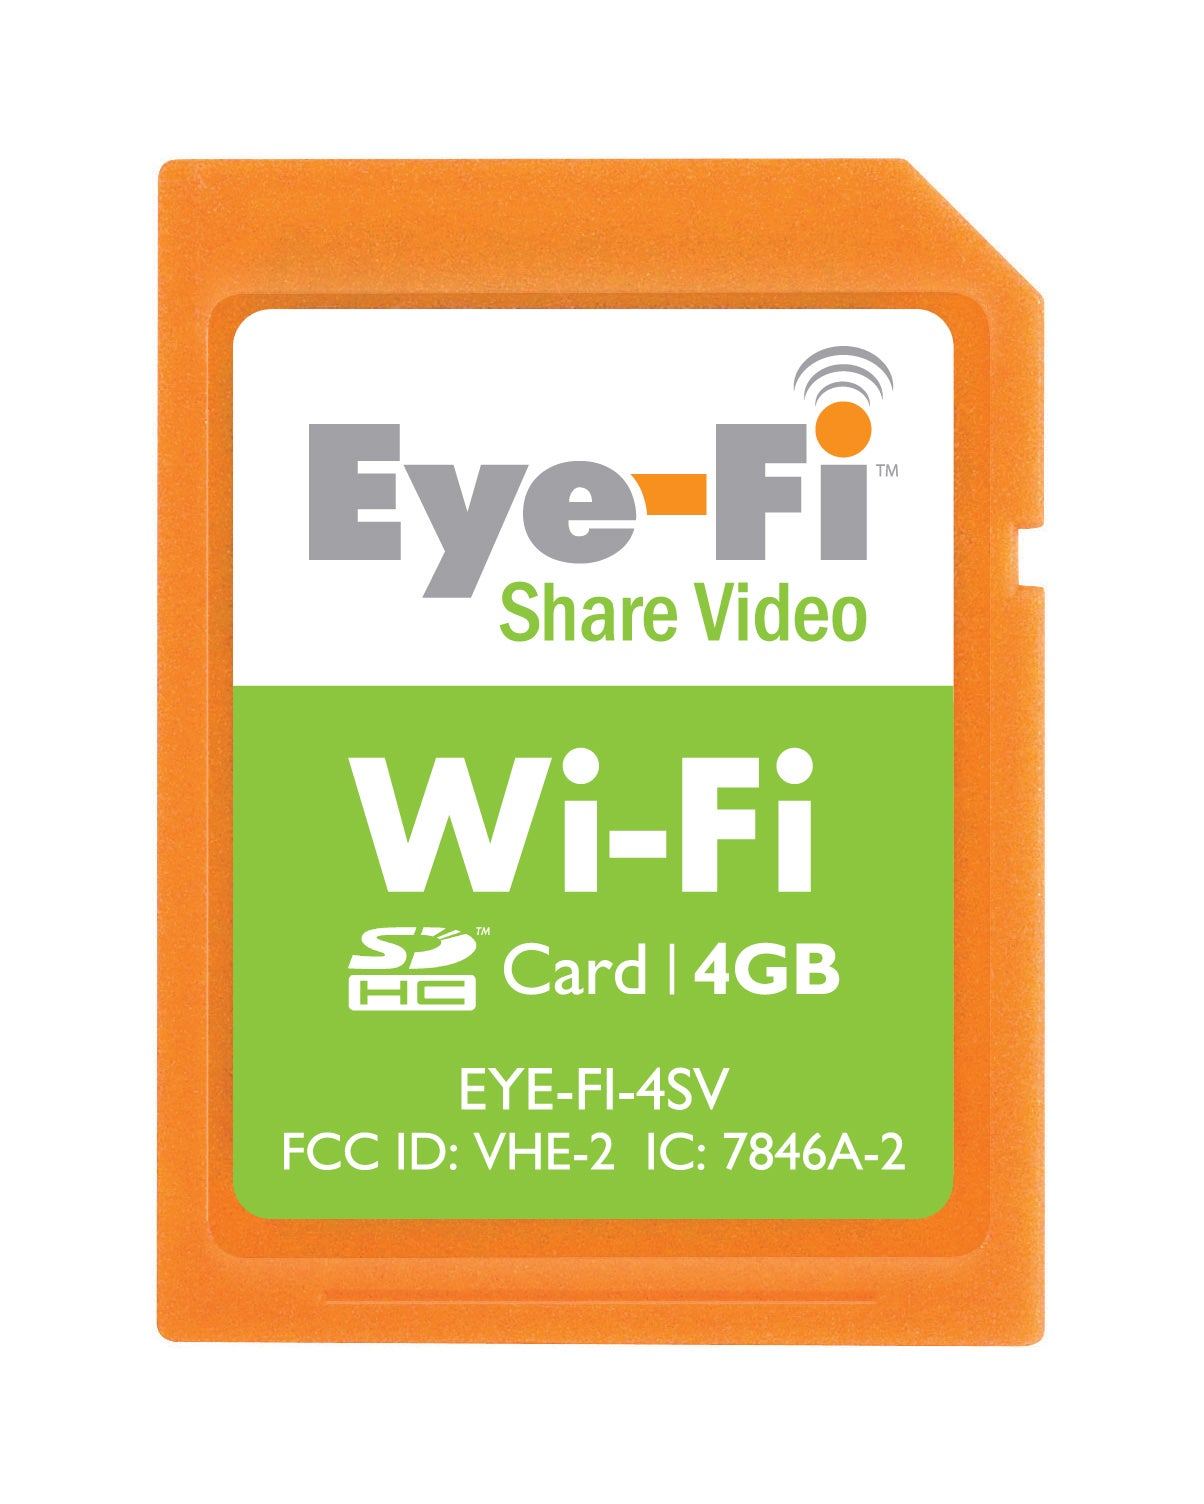 New Eye-Fi Cards Upload Video Wirelessly from Most Any Camera